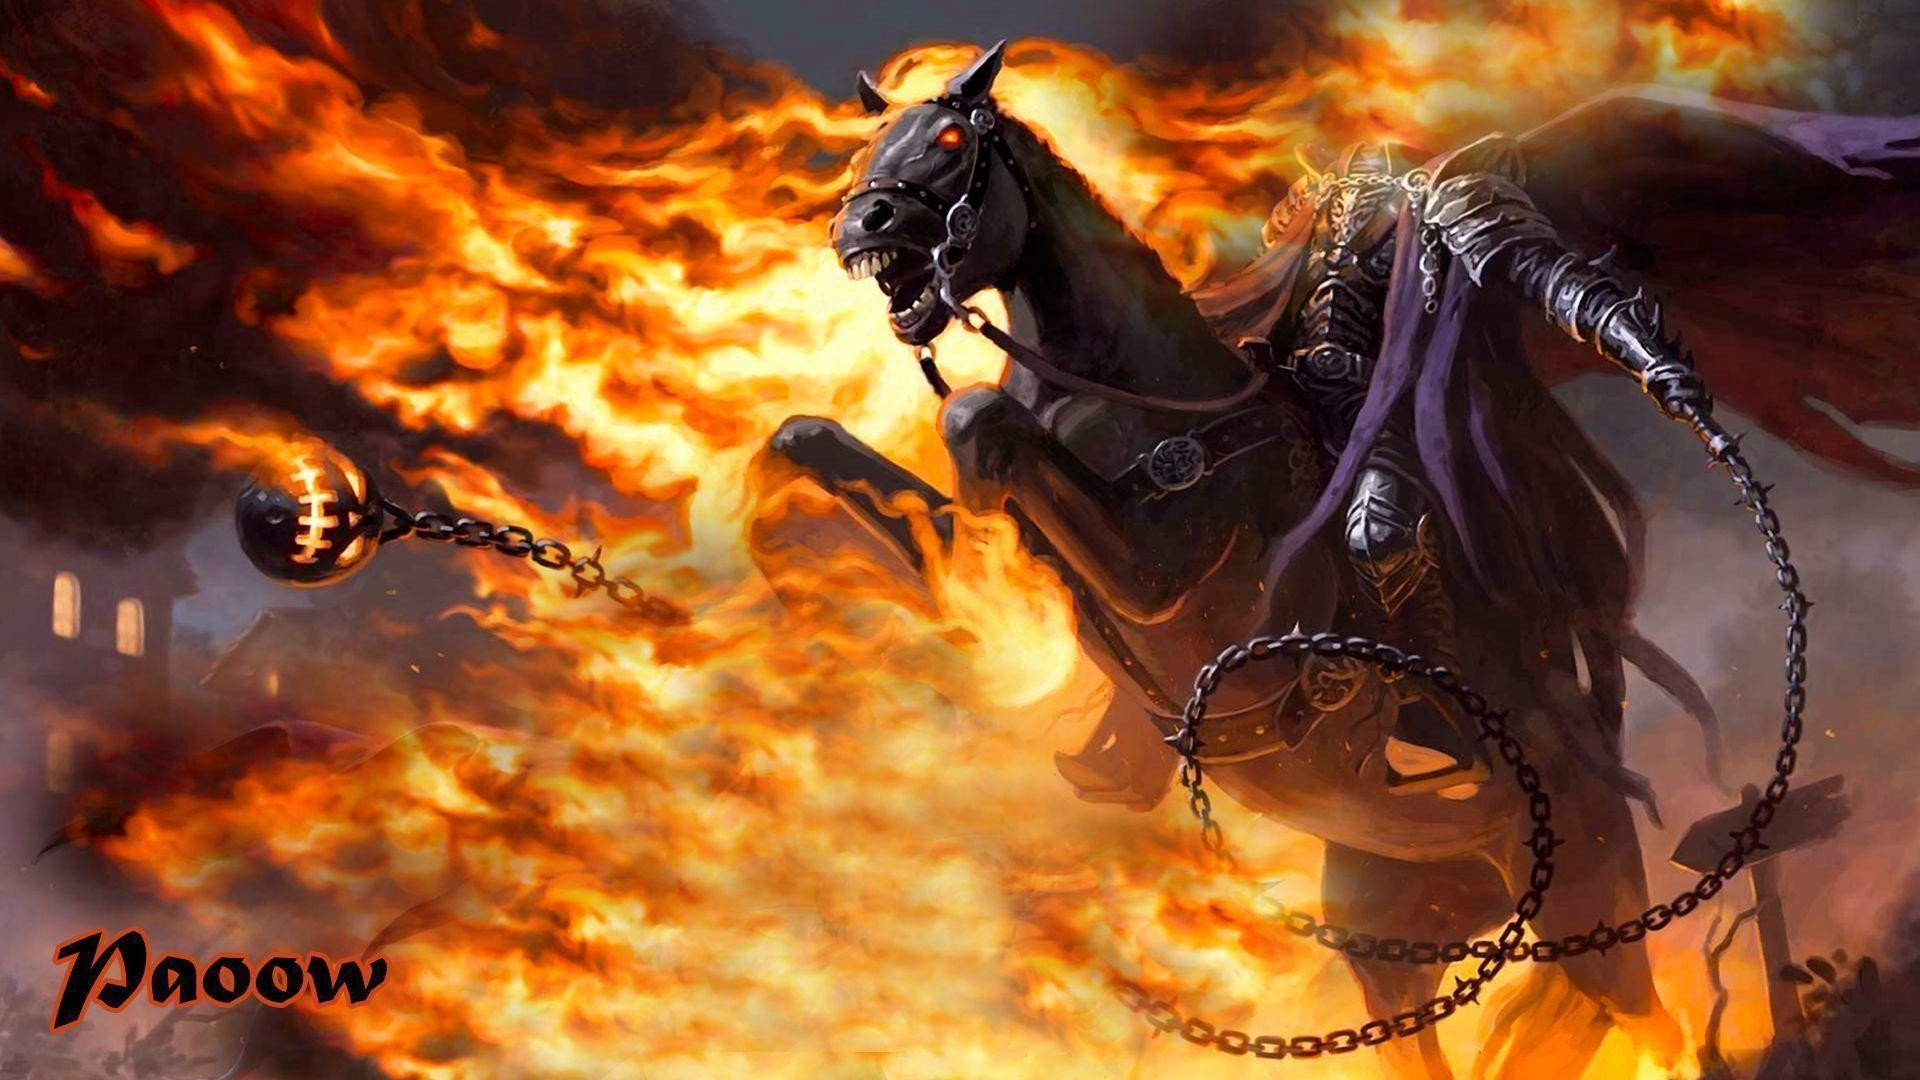 1920x1080 Headless horseman desktop wallpaper - photo#3